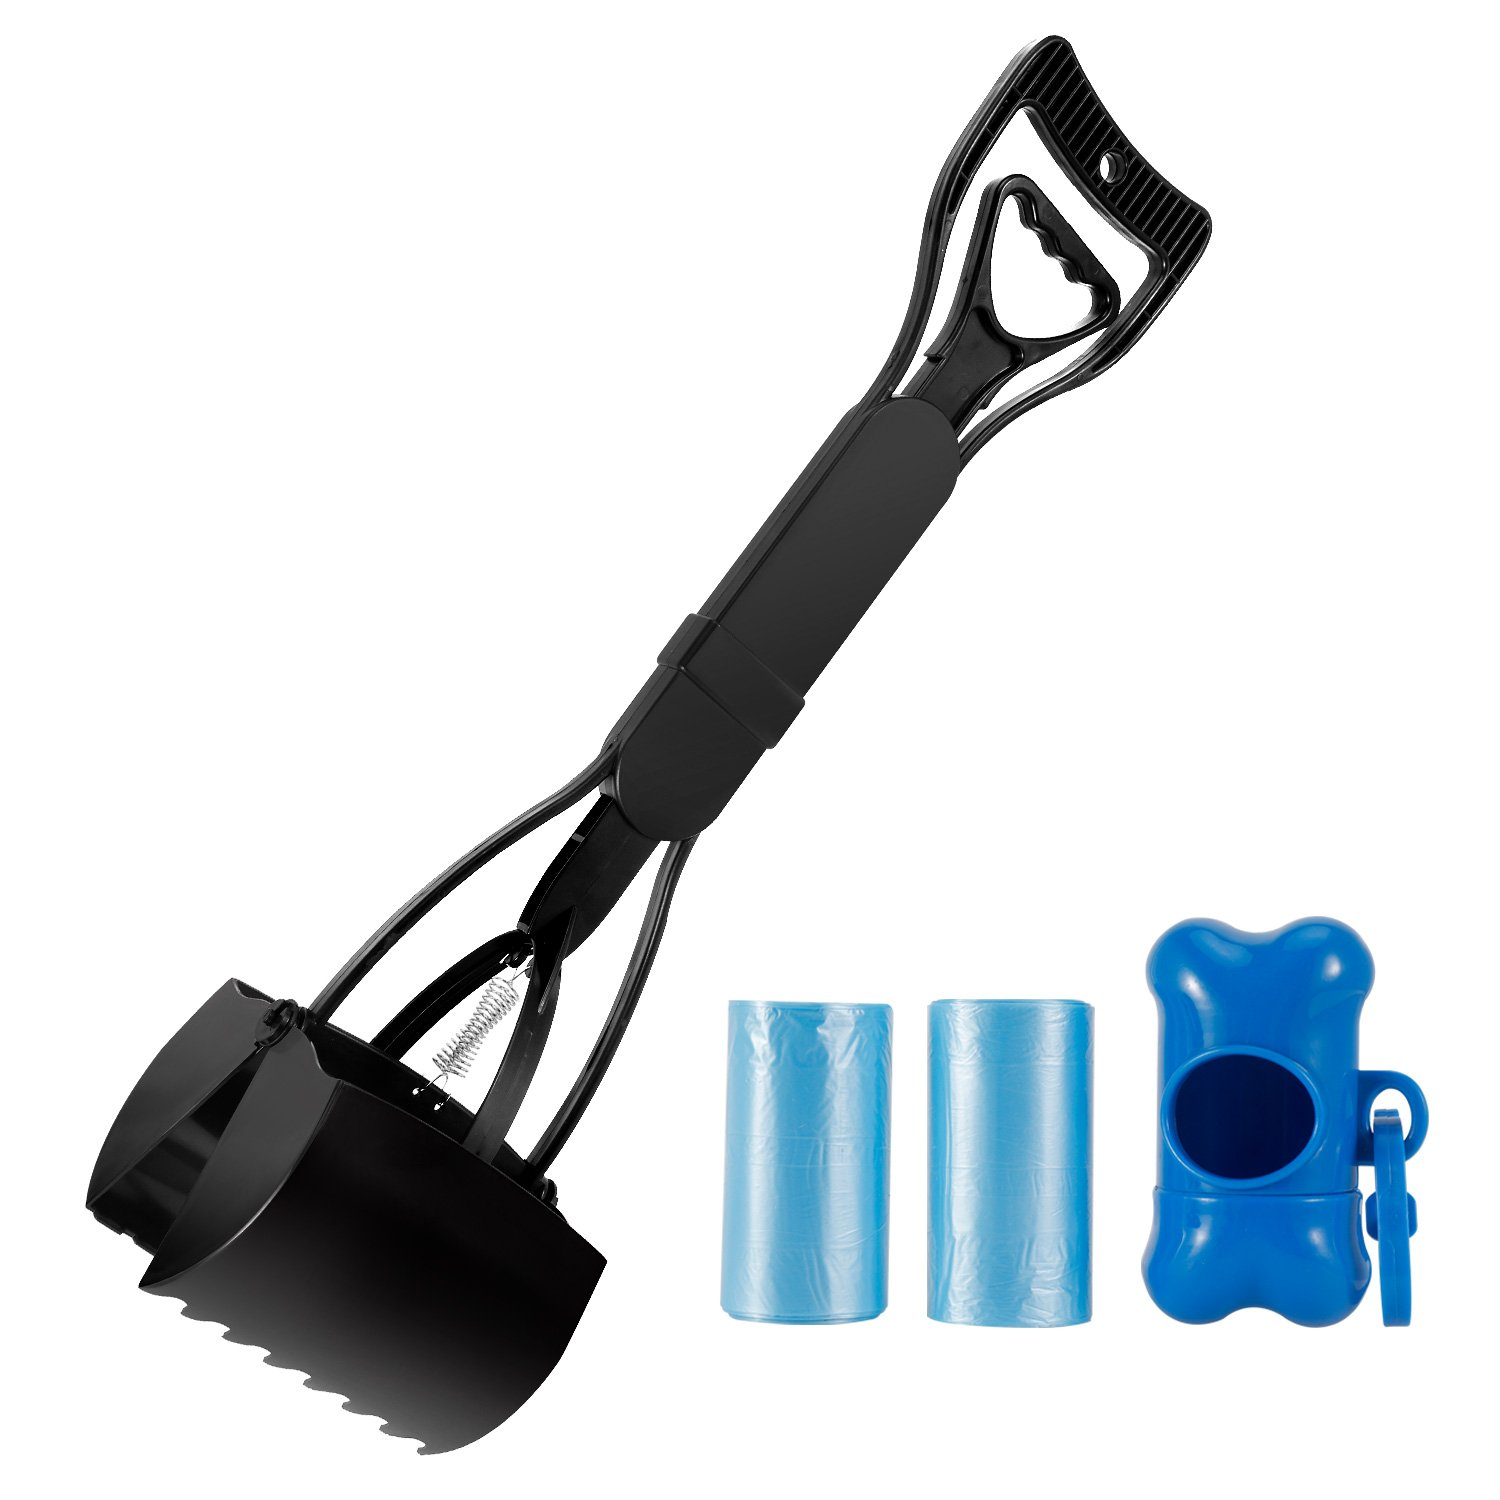 Pooper Scooper, Plastic Jaw Dog Waste Poop Scoop Set, Heavy Duty Large Pick Up Tools With Long Handle,2 Waste Bags and Holder Included,Perfect for All Size Pets(Black 24'')